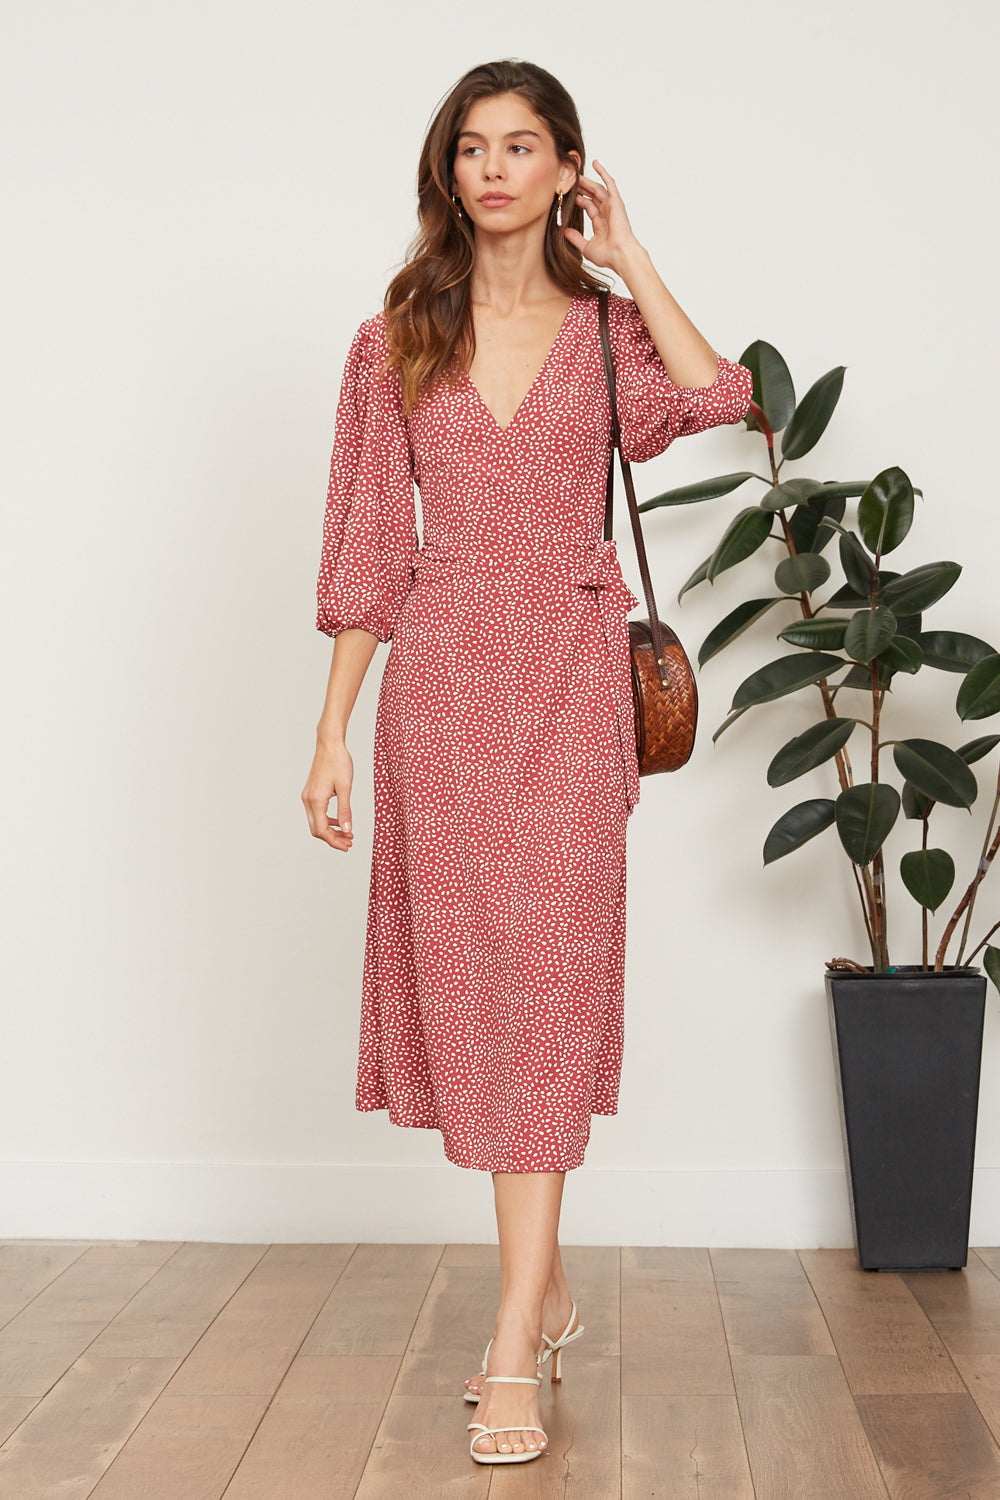 LUCY PARIS - Ilana Wrap Dress